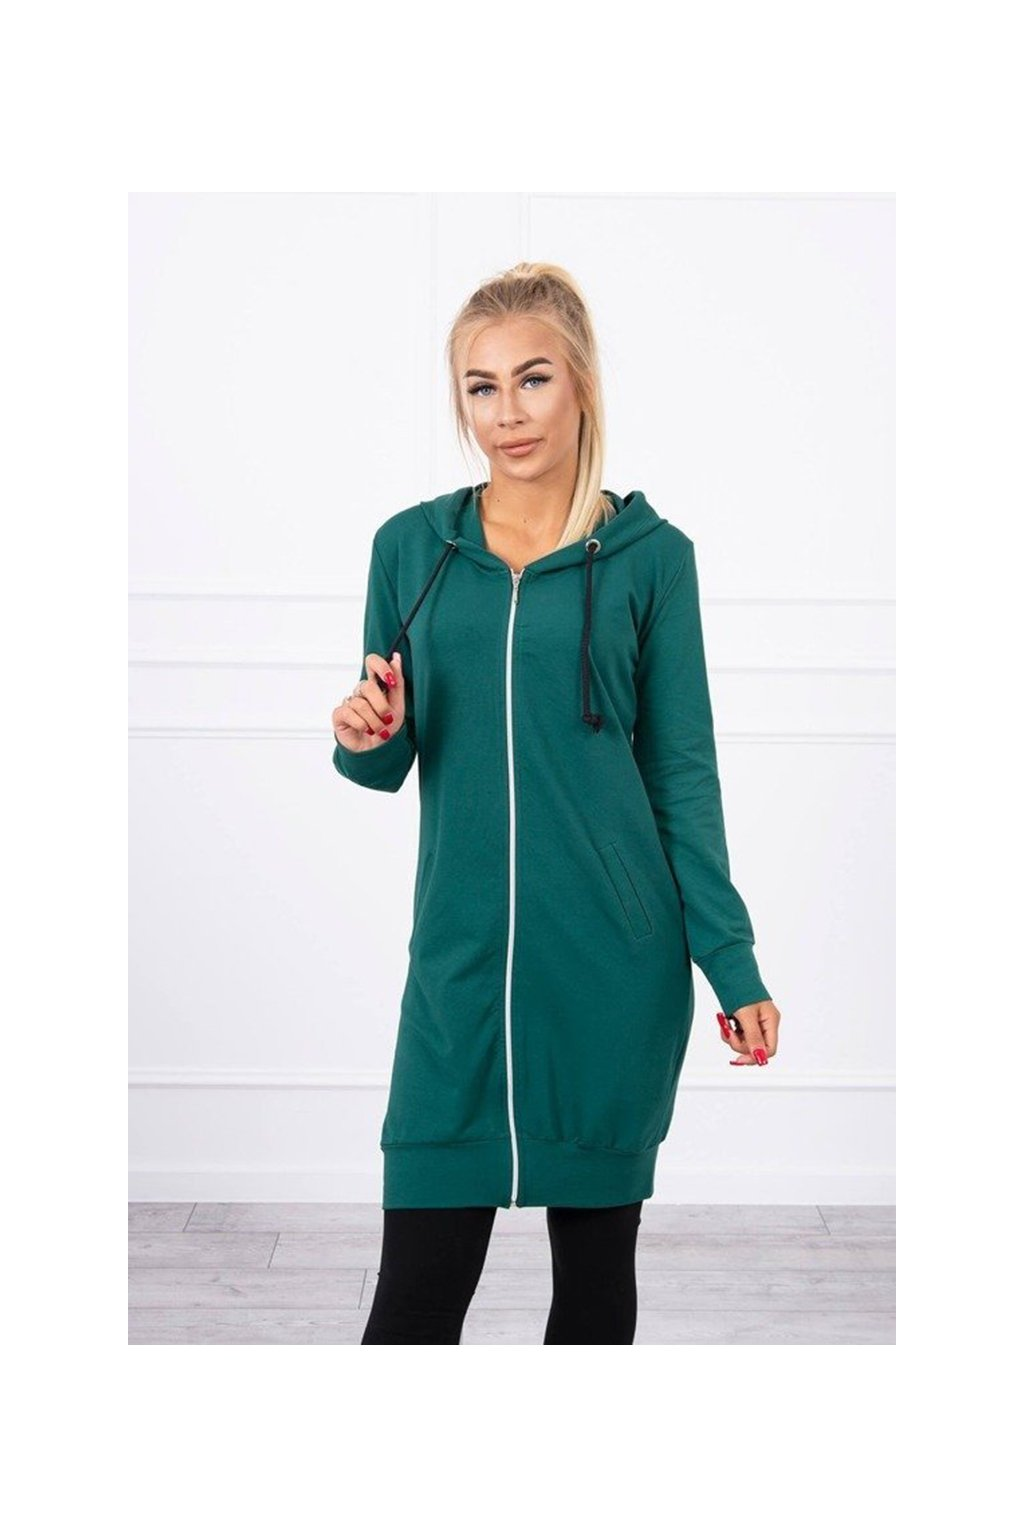 eng pm Hooded dress with a hood green 18216 3